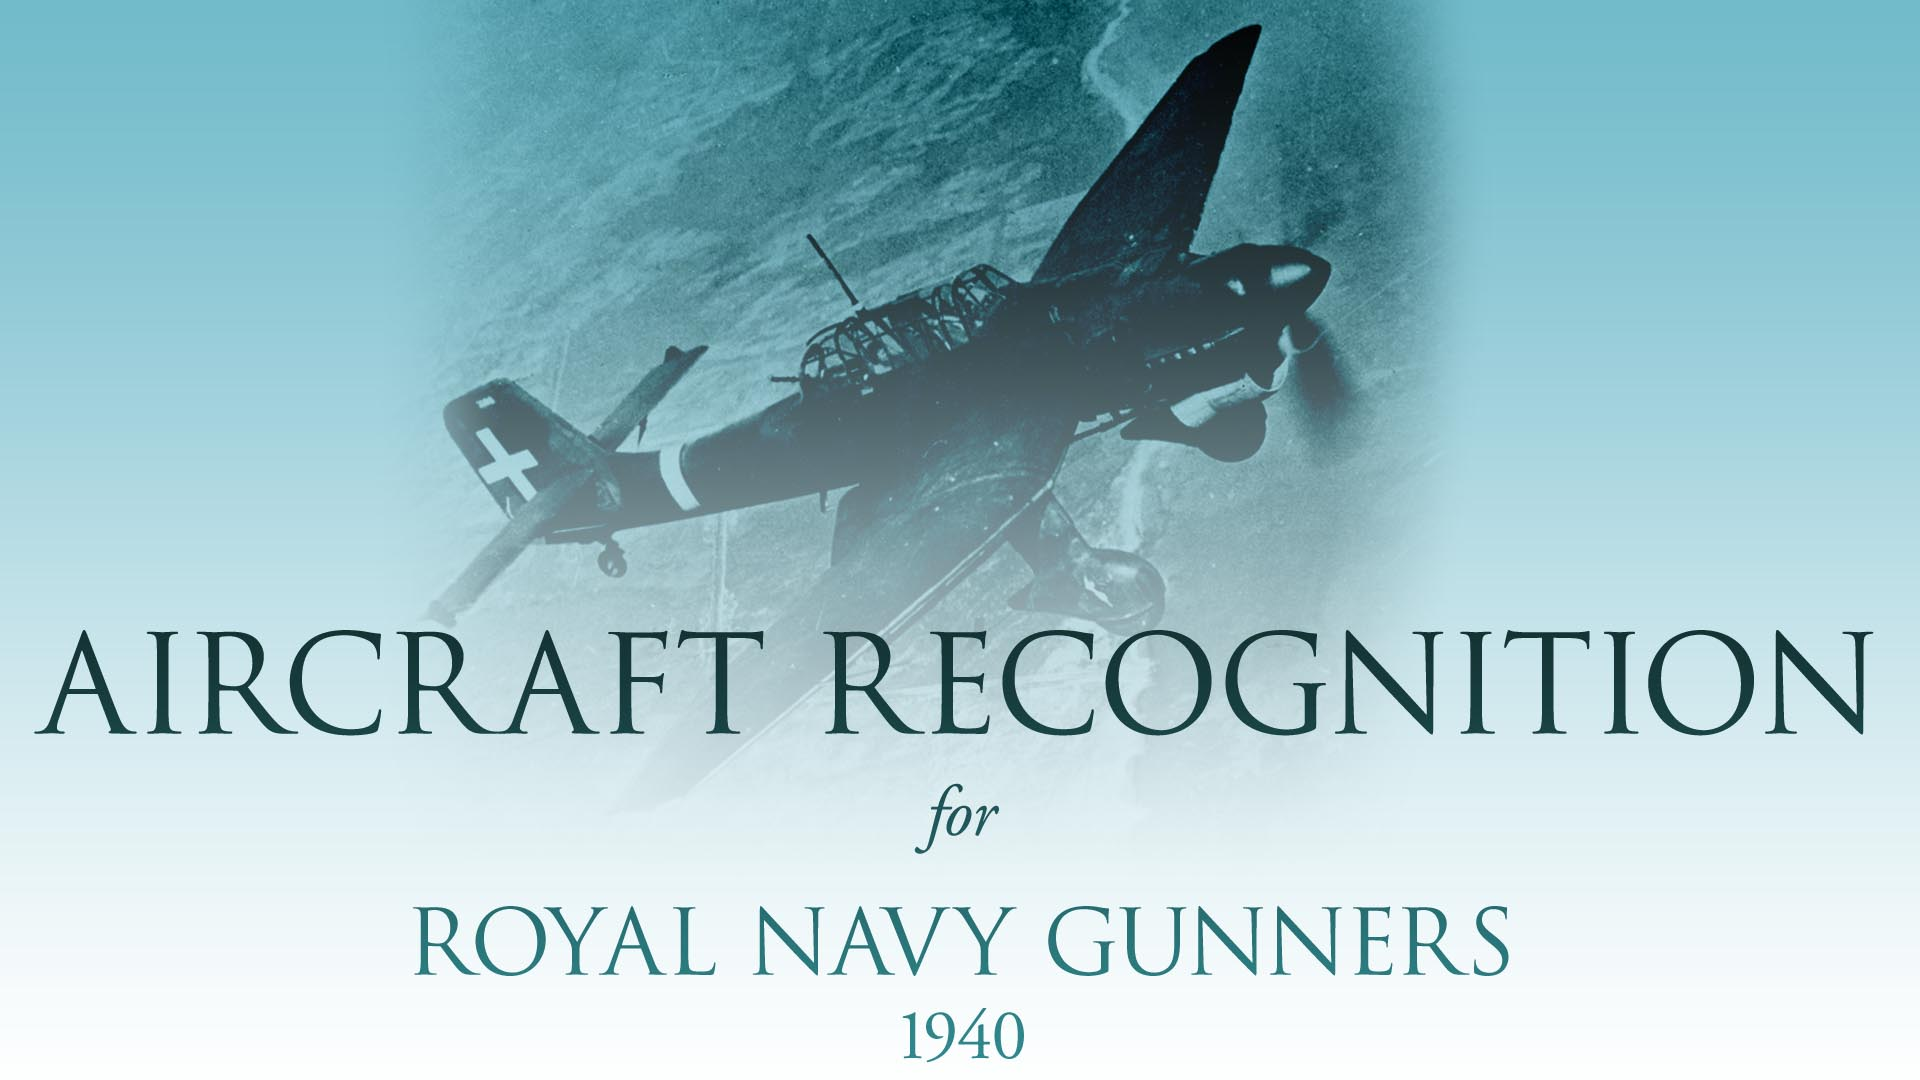 Aircraft Recognition for Royal Navy Gunners -